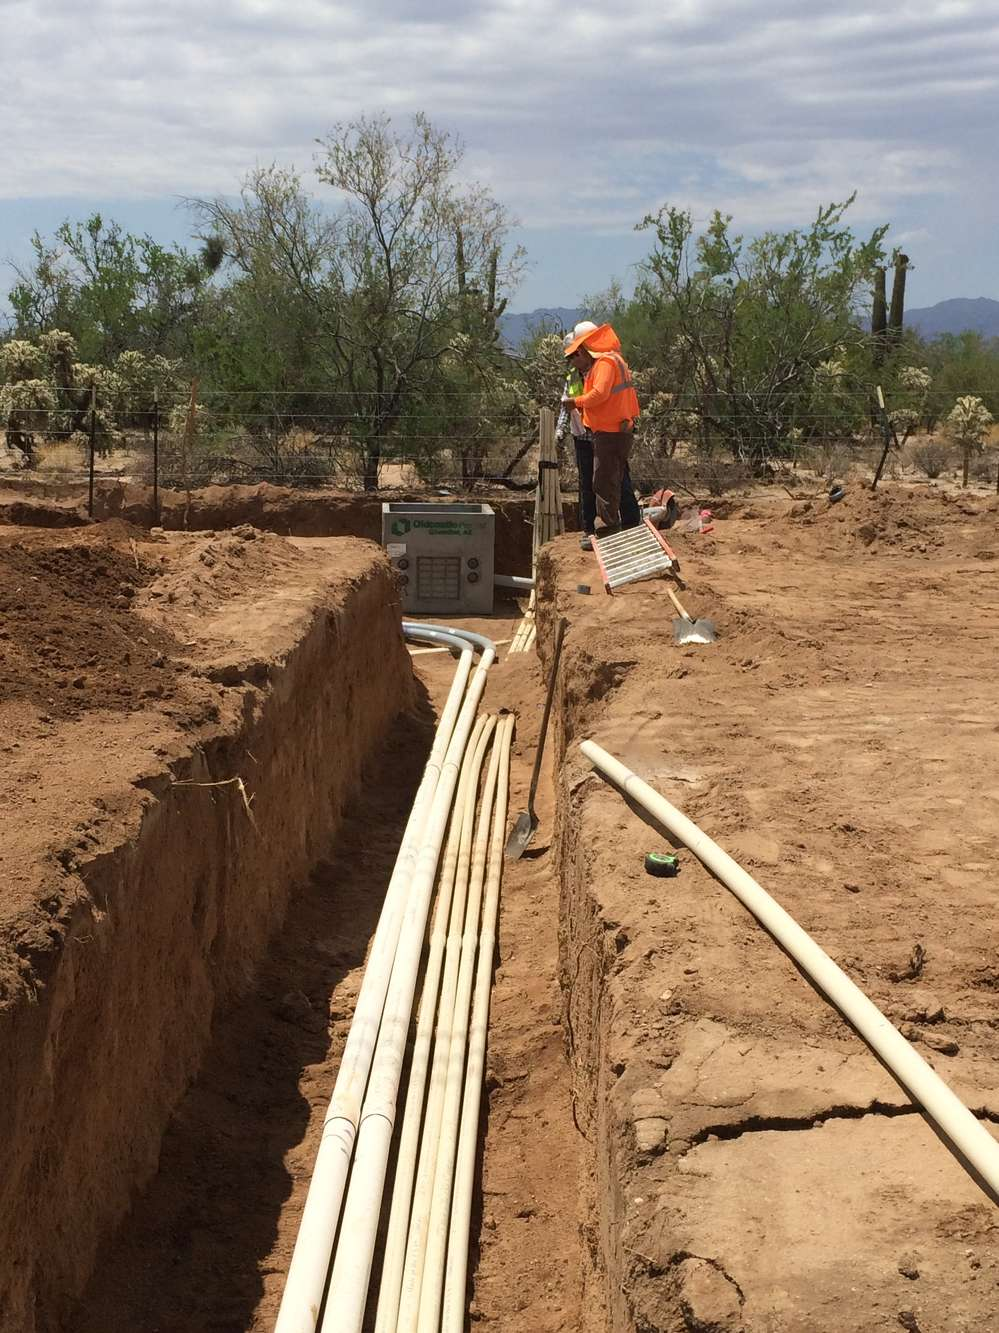 Tom Houle, Town of Marana photo. As a desert parkway, the road design and landscaping will complement the desert scenery.